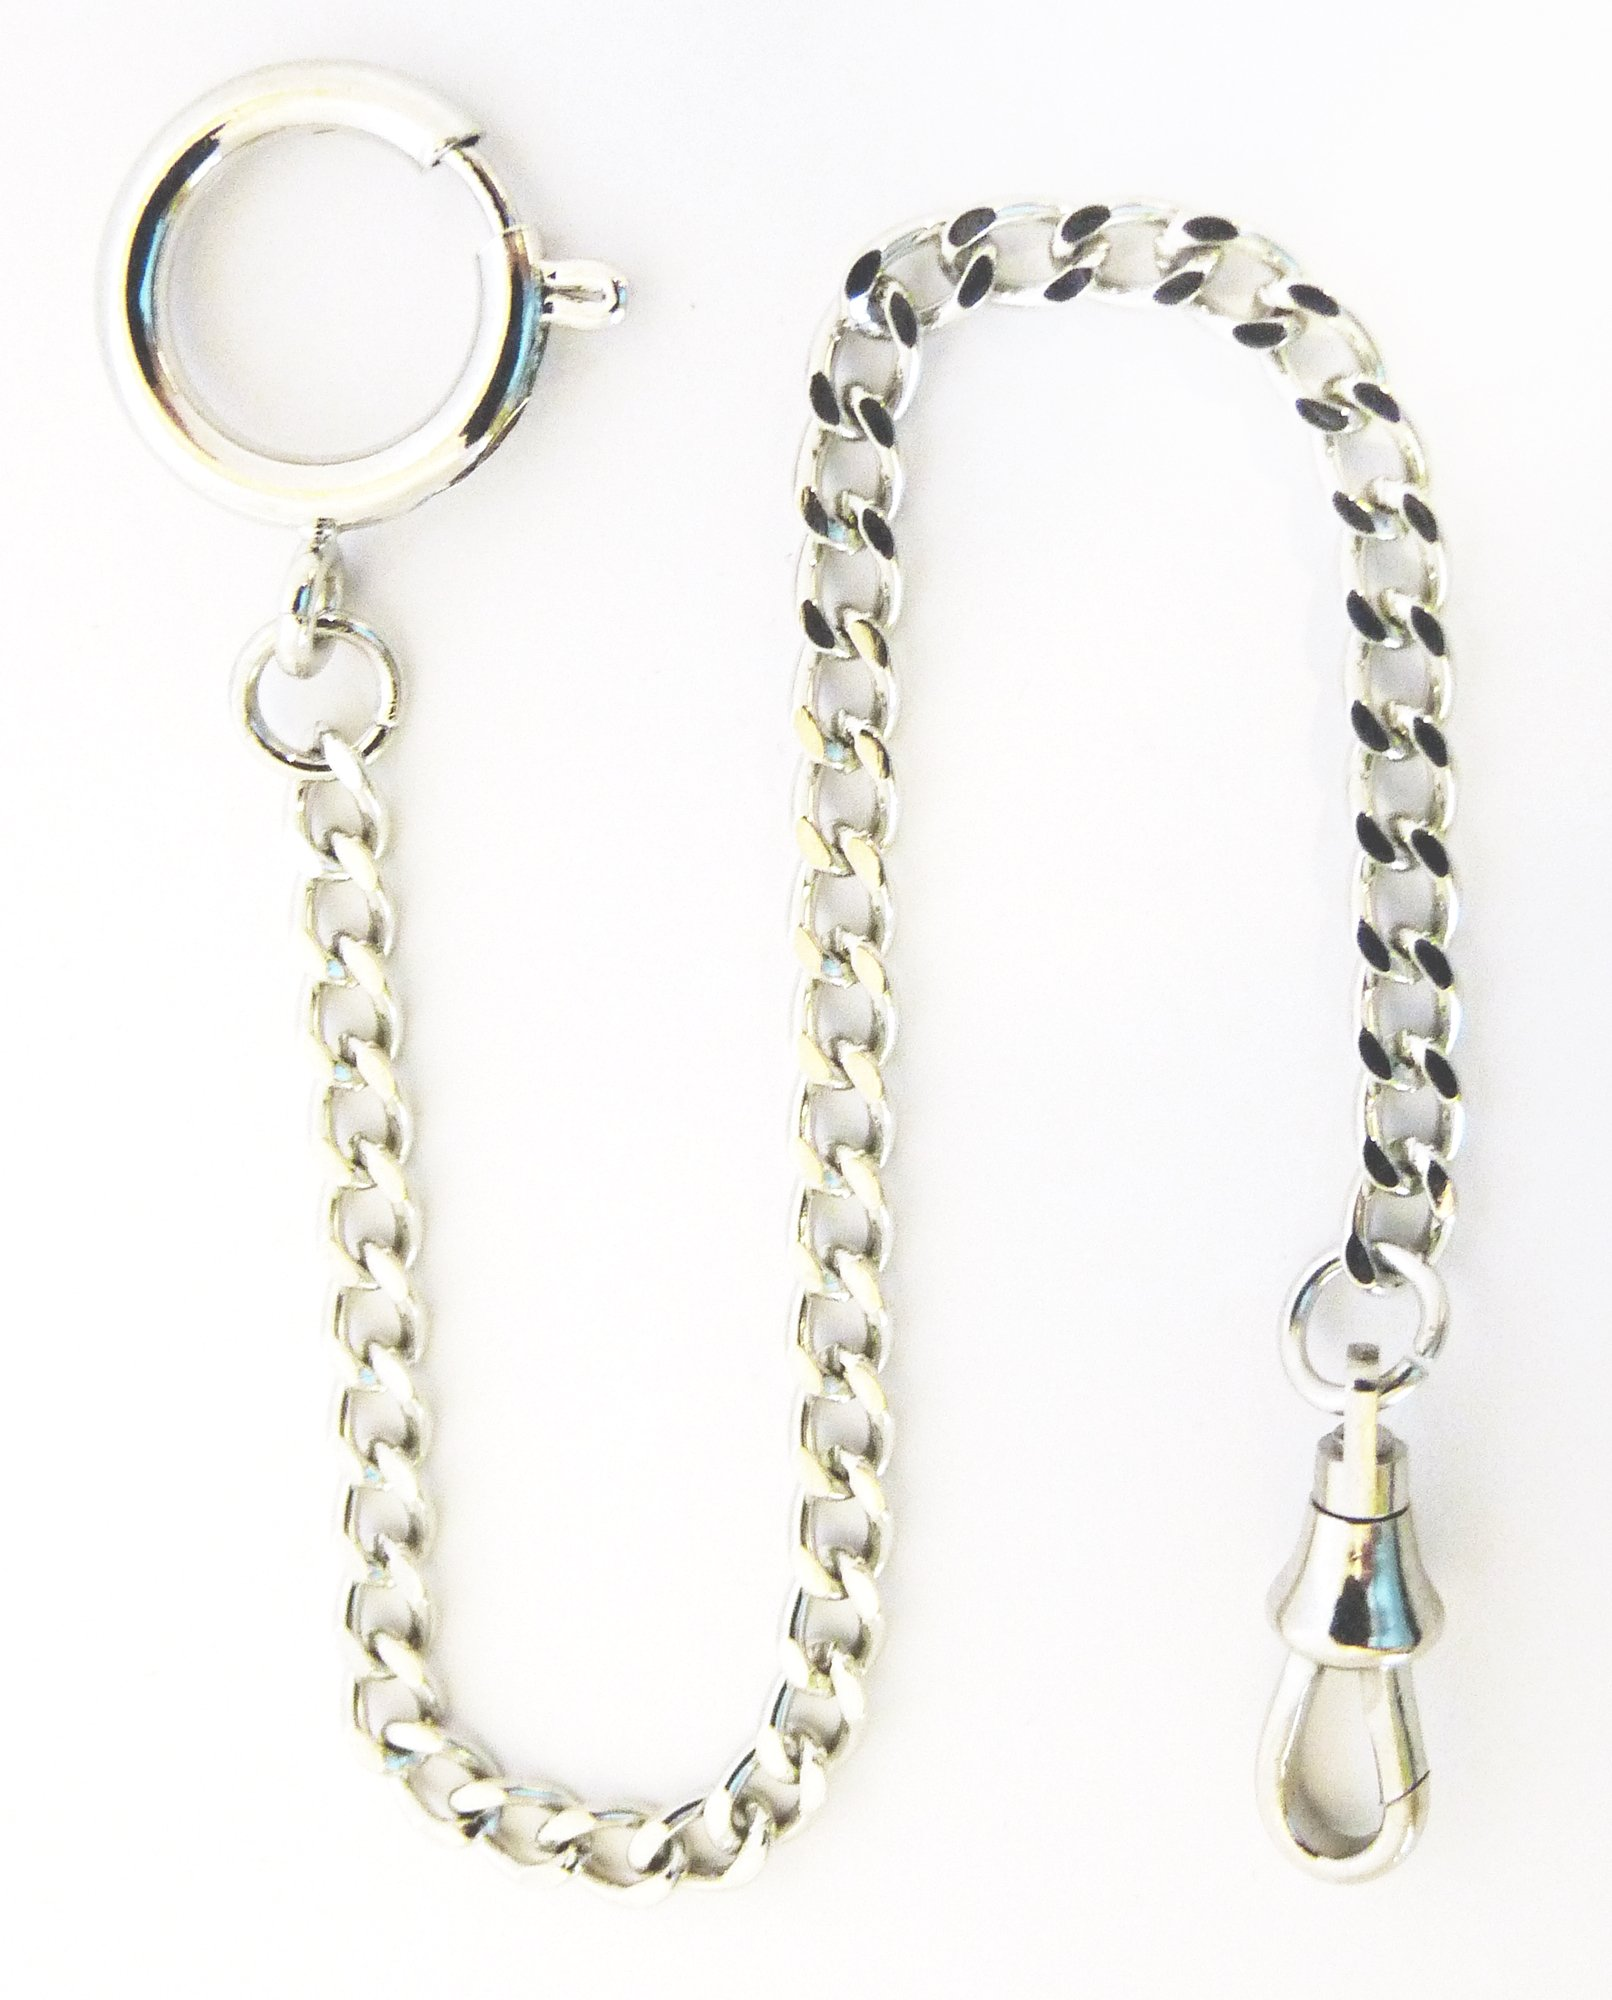 Dueber Chrome Plated Curb Pocket Watch Chain with Spring Ring